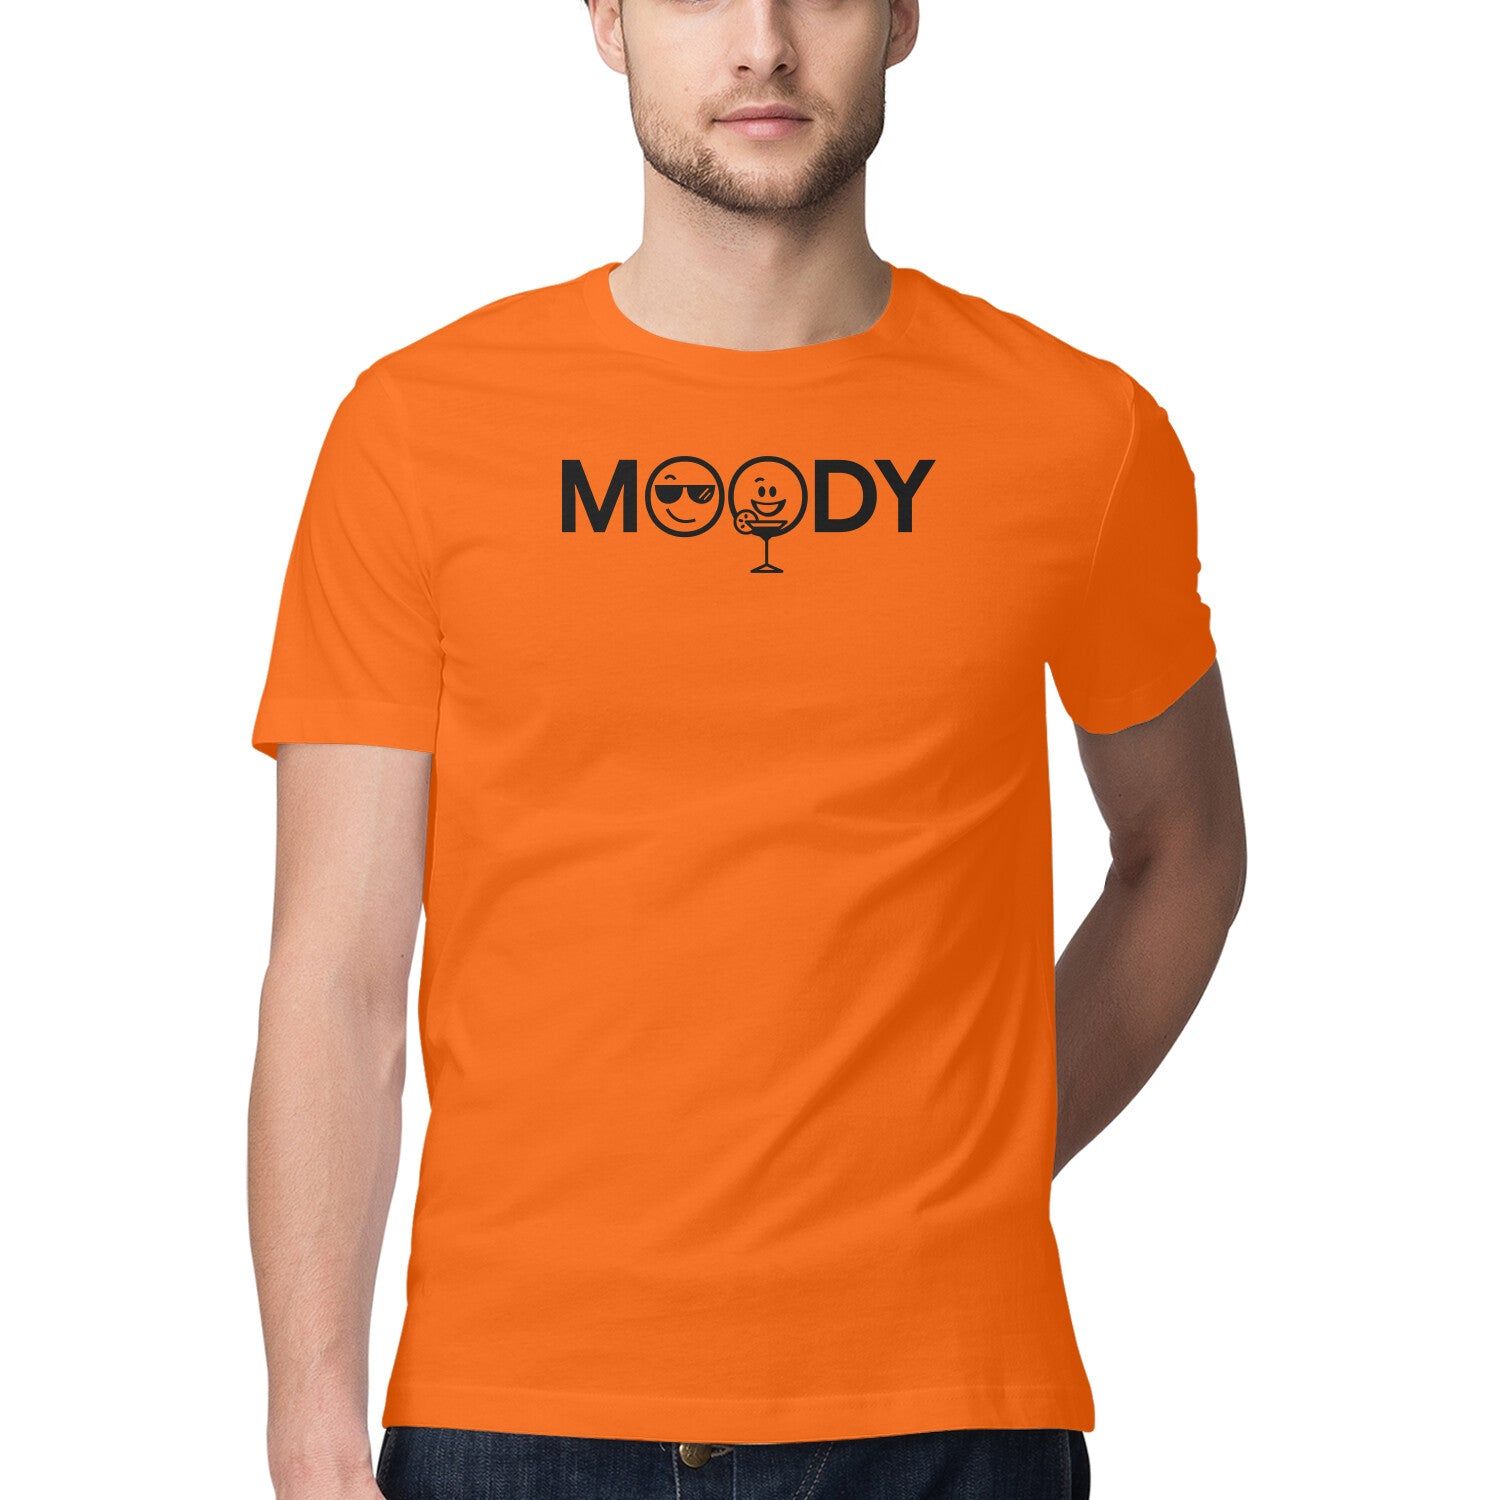 Moody- Men's T-shirt